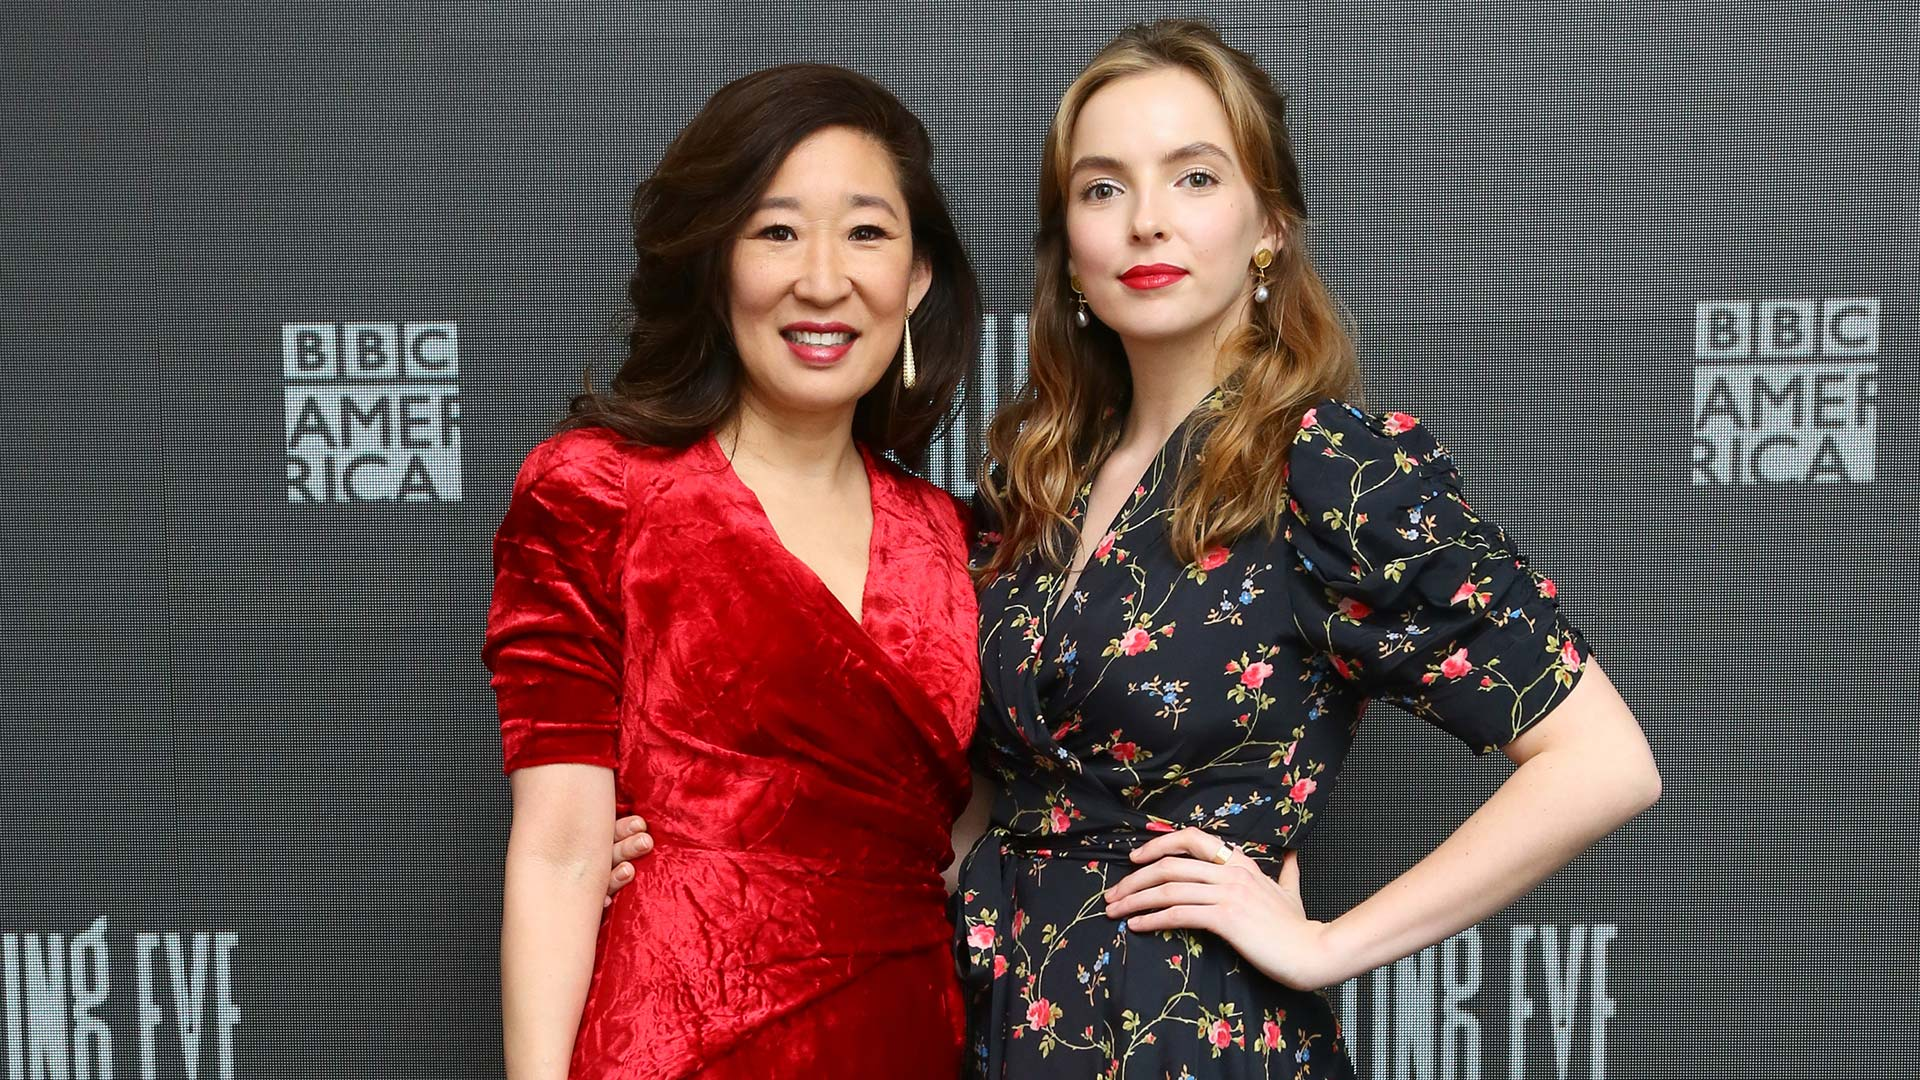 BBC America's 'Killing Eve' Renewed for a Second Season Ahead of ...